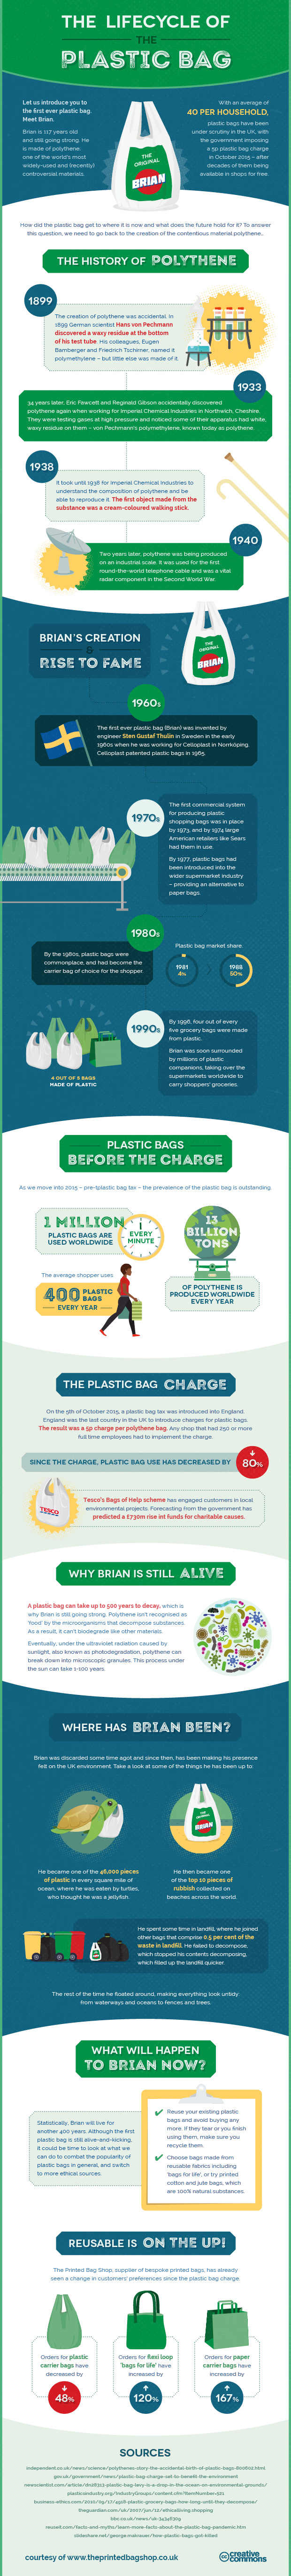 Lifecycle of a plastic bag